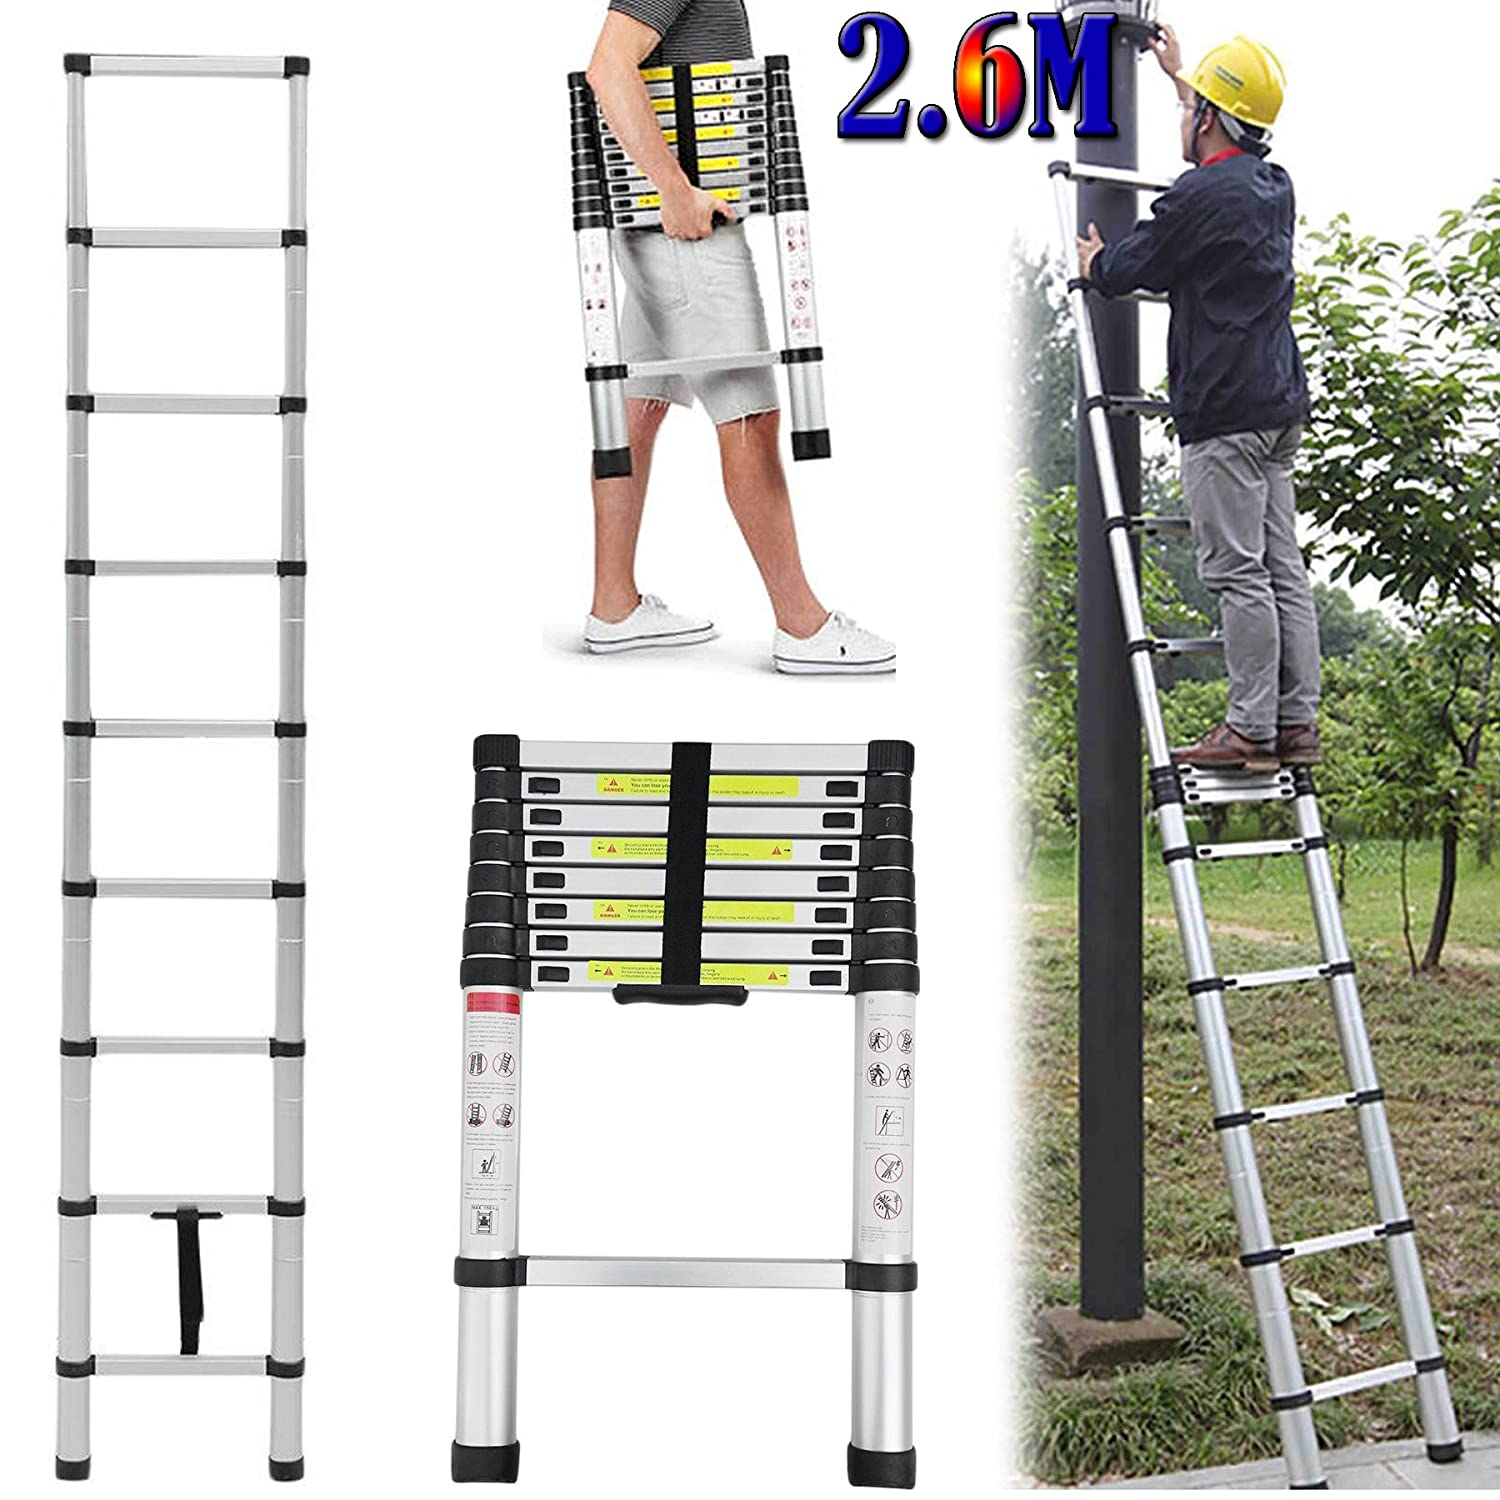 Telescopic Extension Ladder Portable Multi Purpose Aluminium Folding Ladders Max Load 150kg//330lbs UK Local Delivery-3.2m//10.5ft